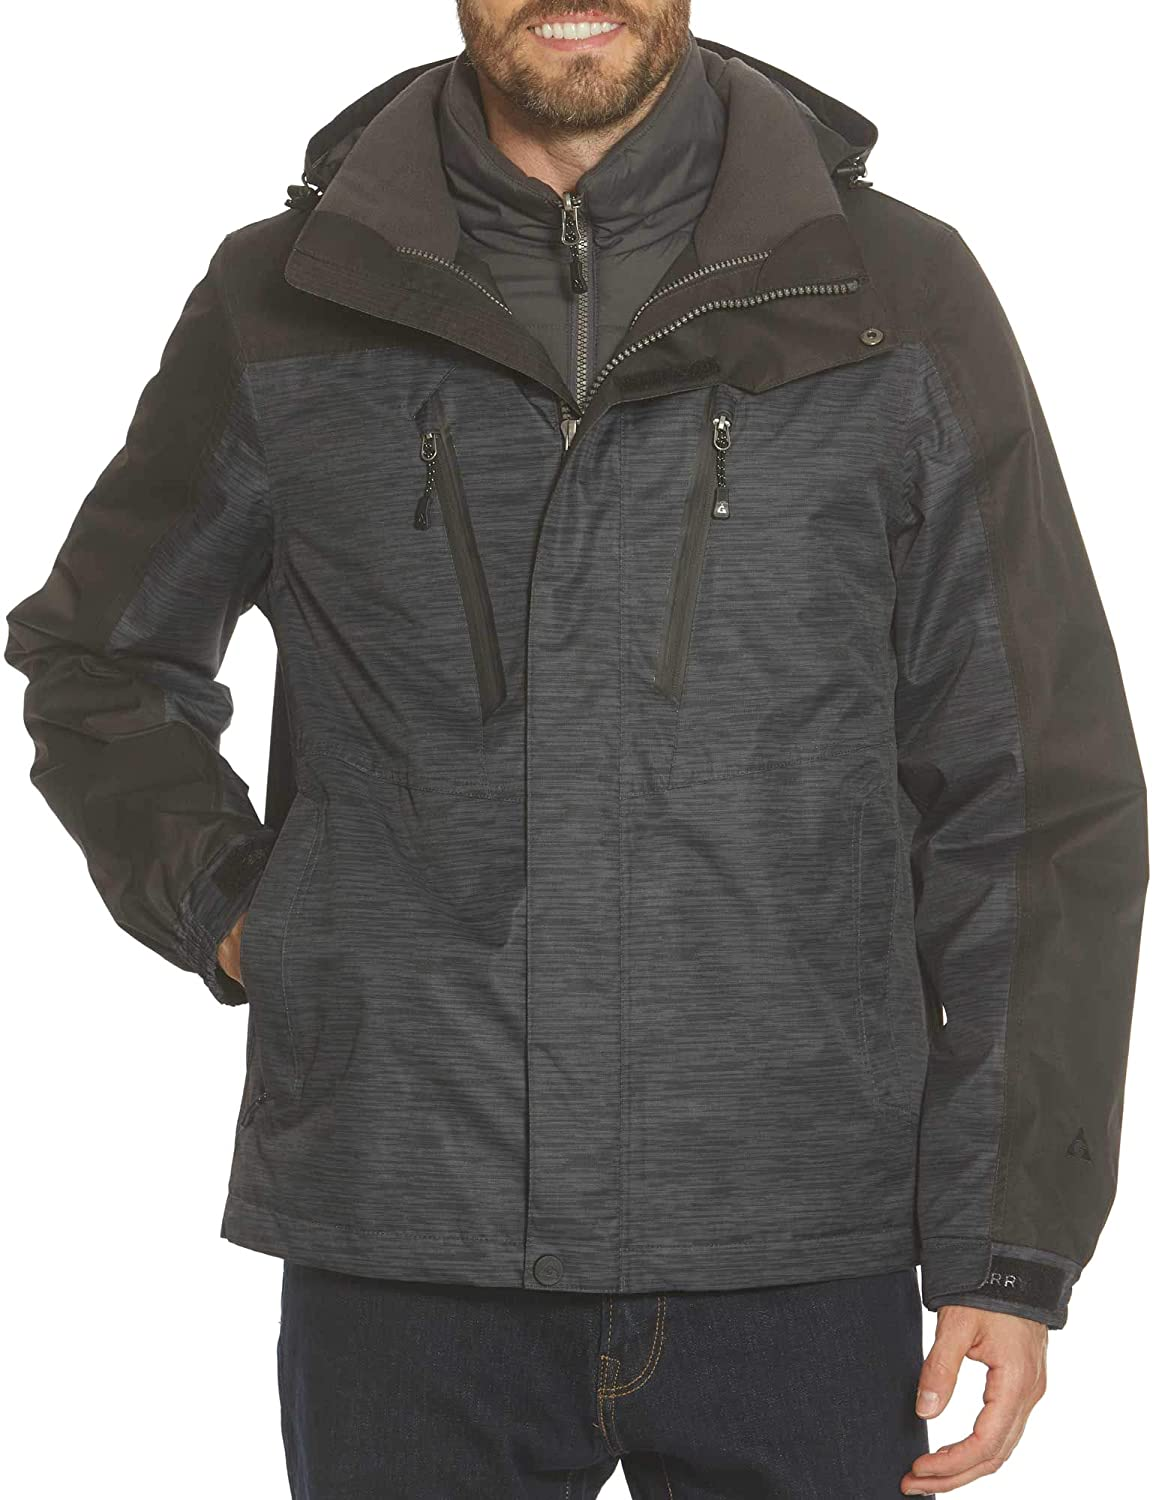 ebf692f01 Gerry Men's Crusade 3-in-1 System Jacket at Amazon Men's Clothing store: